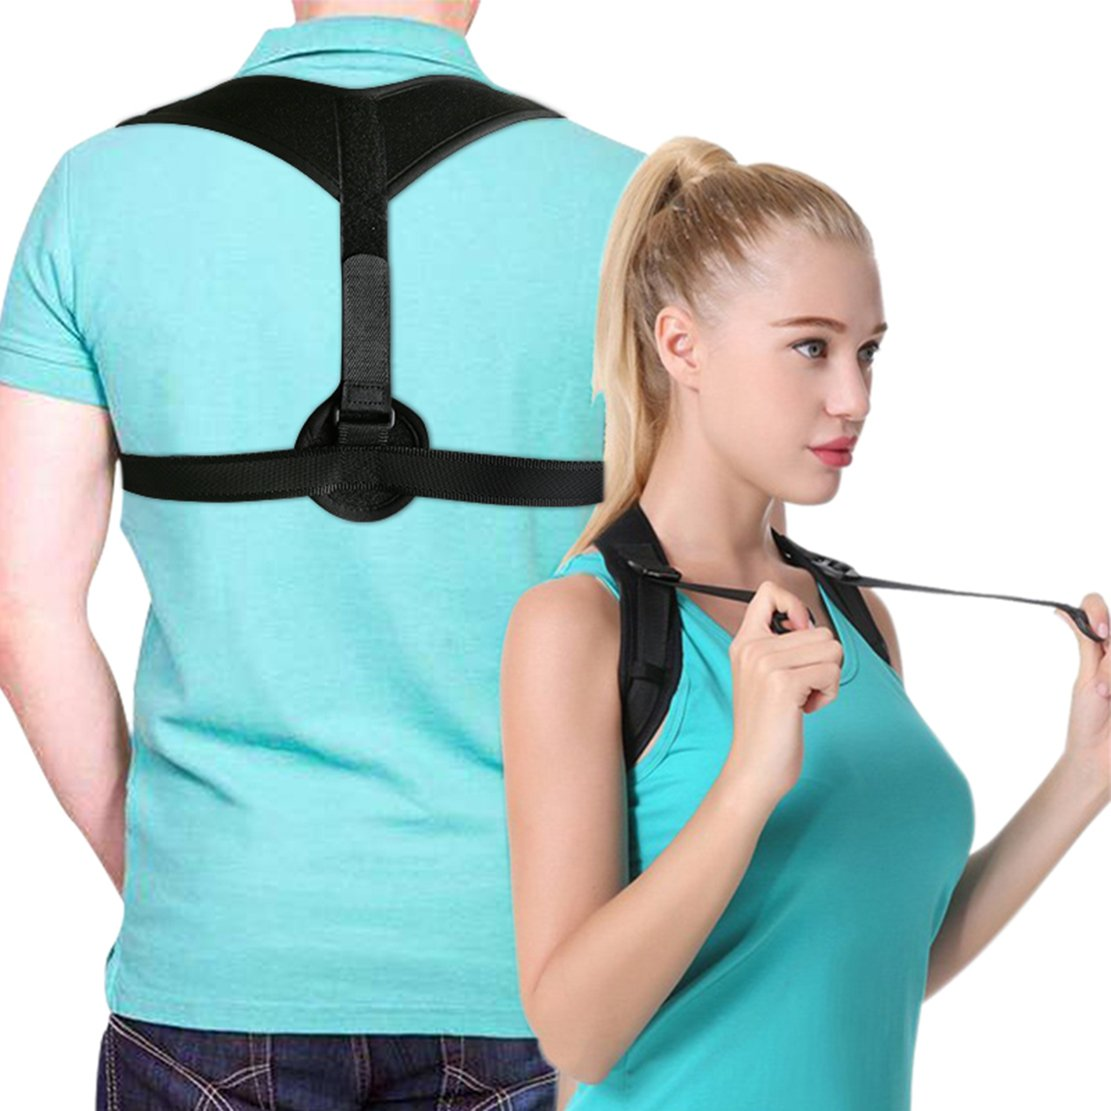 Posture Corrector Upper Back Braces for Women Men, Adjustable Thoracic Brace for Hunching Slouching, Neck Shoulder Supports for Upper Back Alignment and Pain Relief, Bonus Gift 2x Armpit Pads by STSTECH (Image #1)